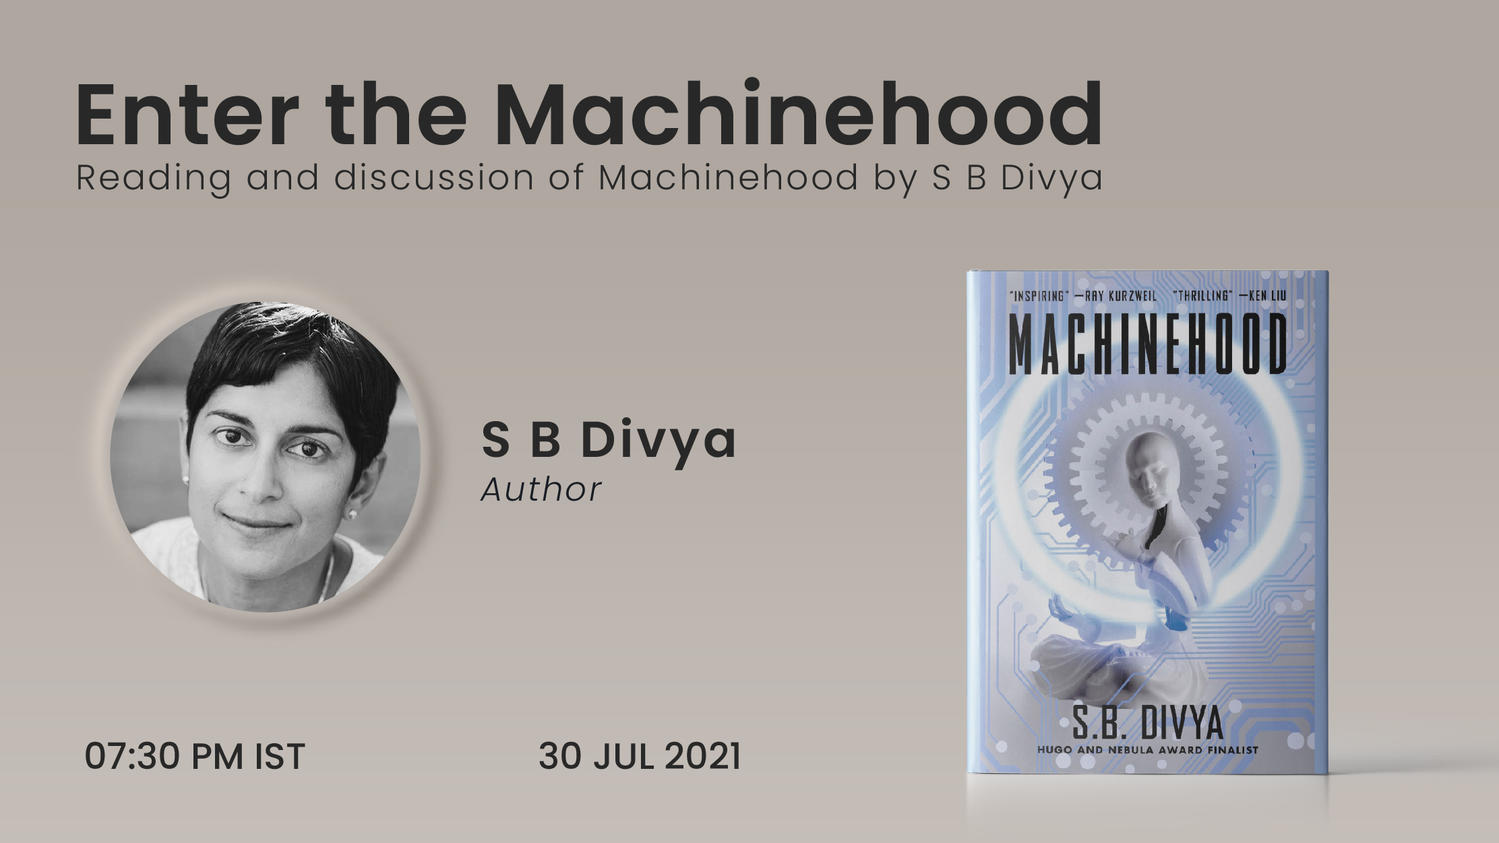 Enter the Machinehood - reading and discussion of Machinehood by S B Divya